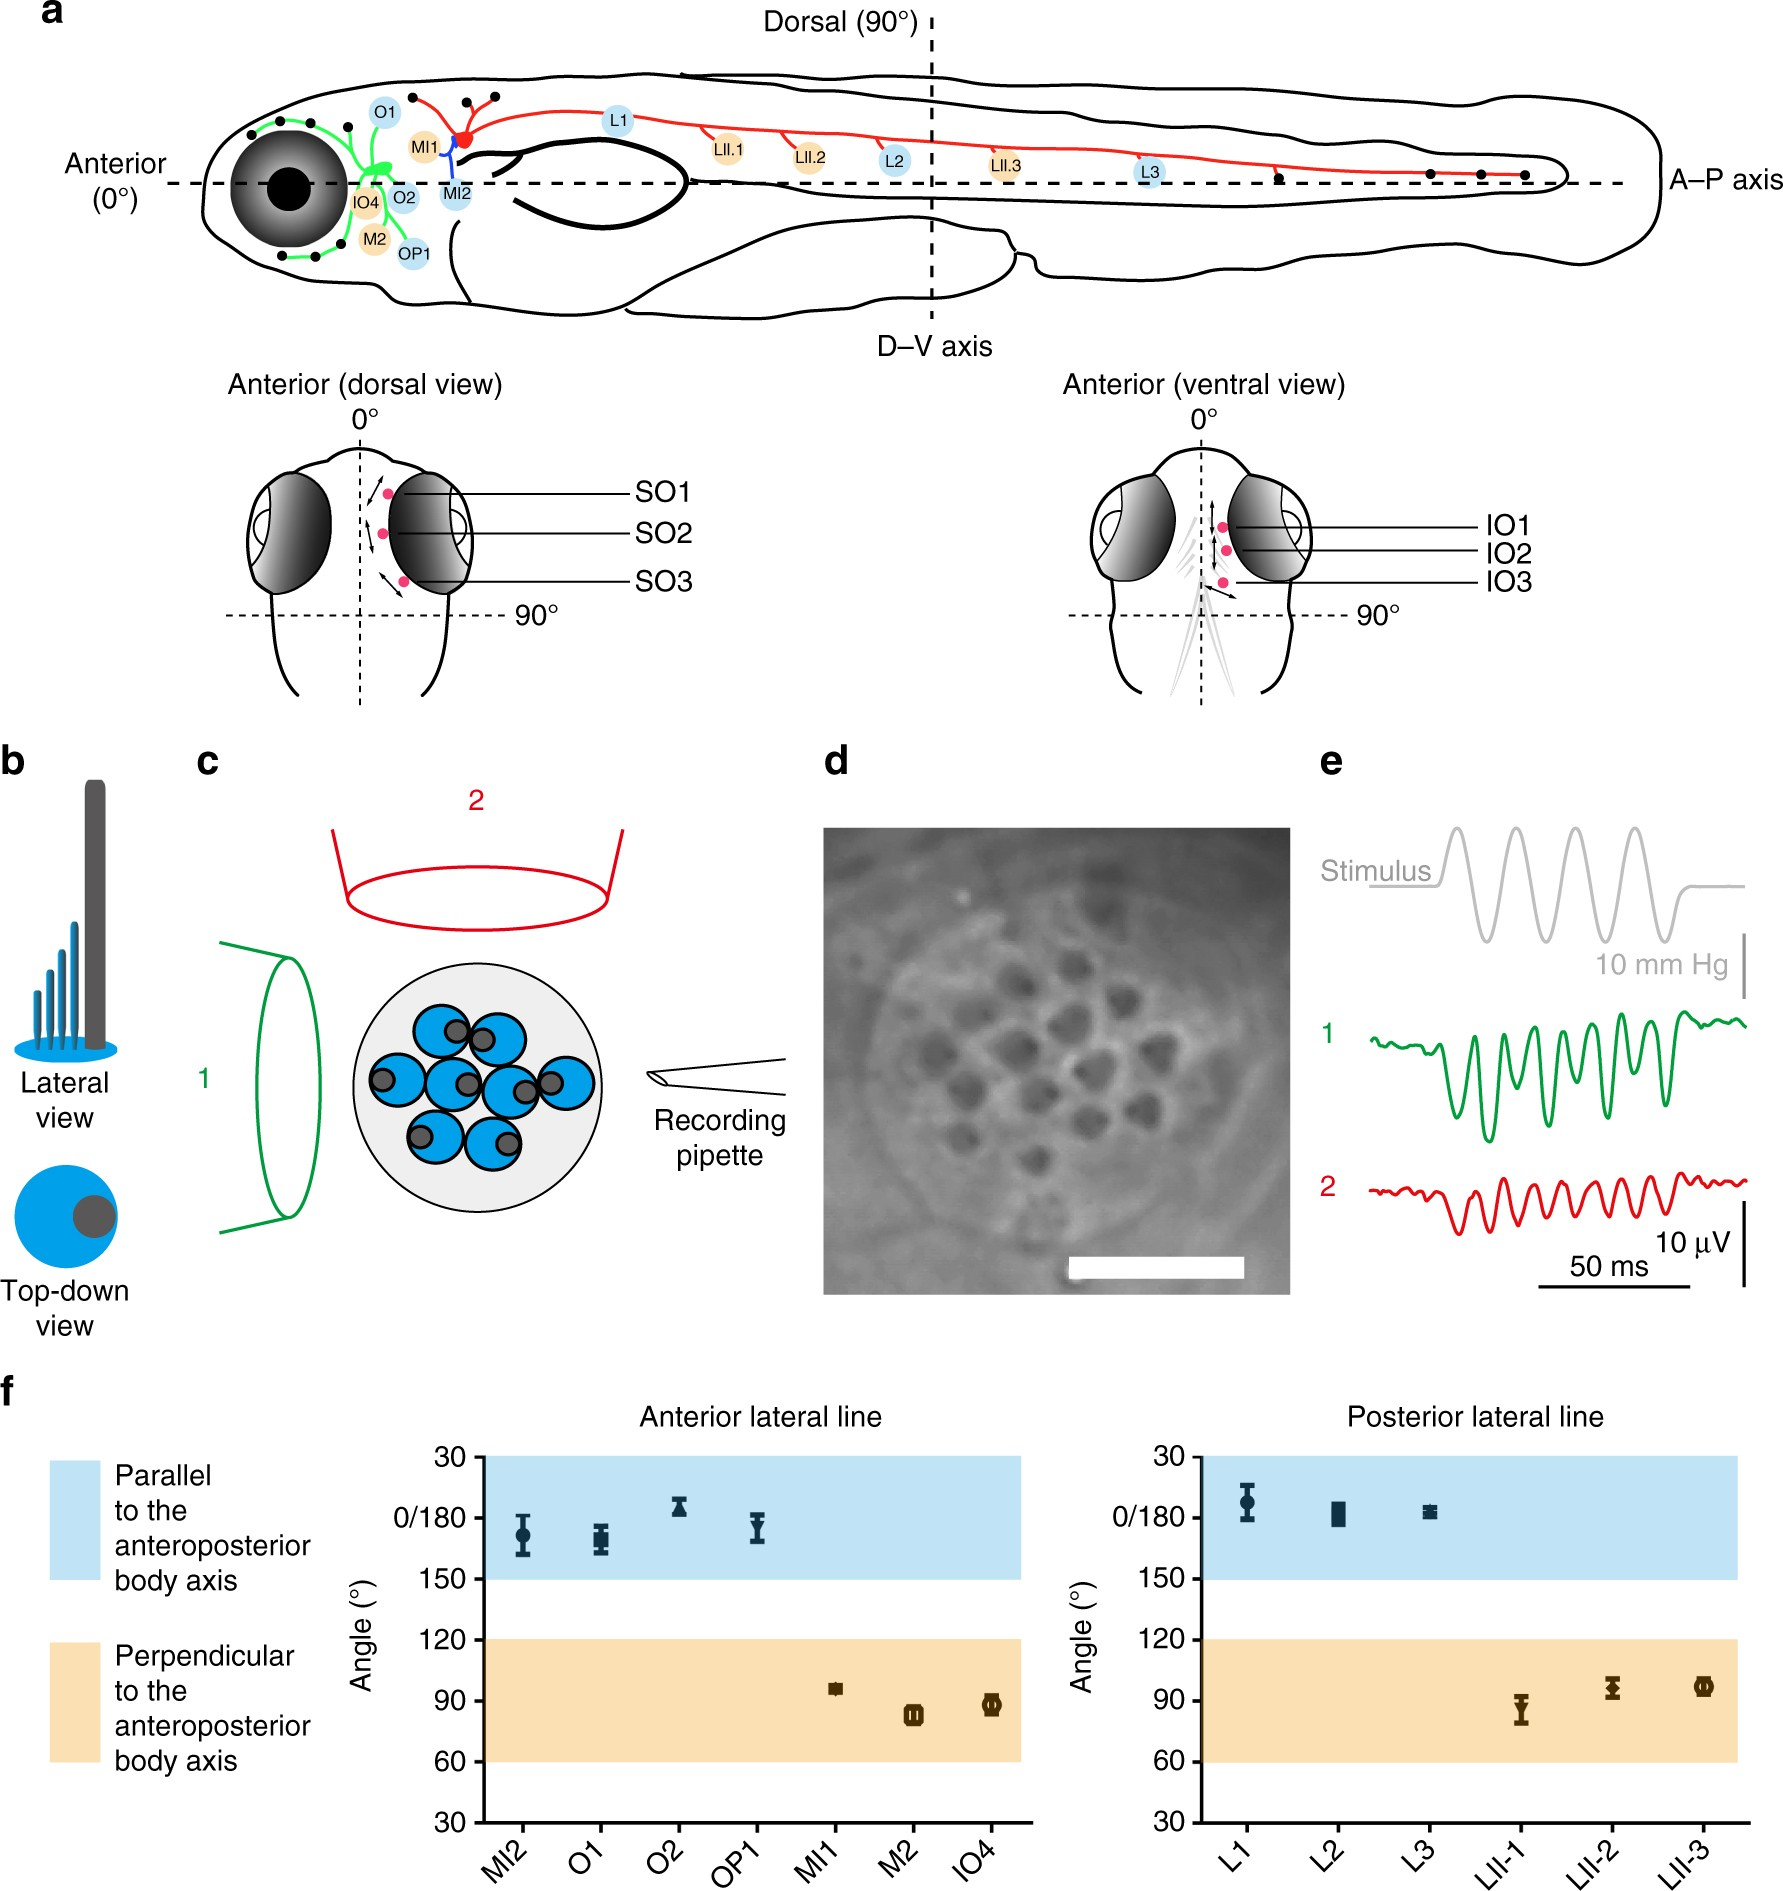 A Molecular Basis For Water Motion Detection By The Mechanosensory 2002 Ford F 150 Tail Light Wiring Diagram Lateral Line Of Zebrafish Nature Communications